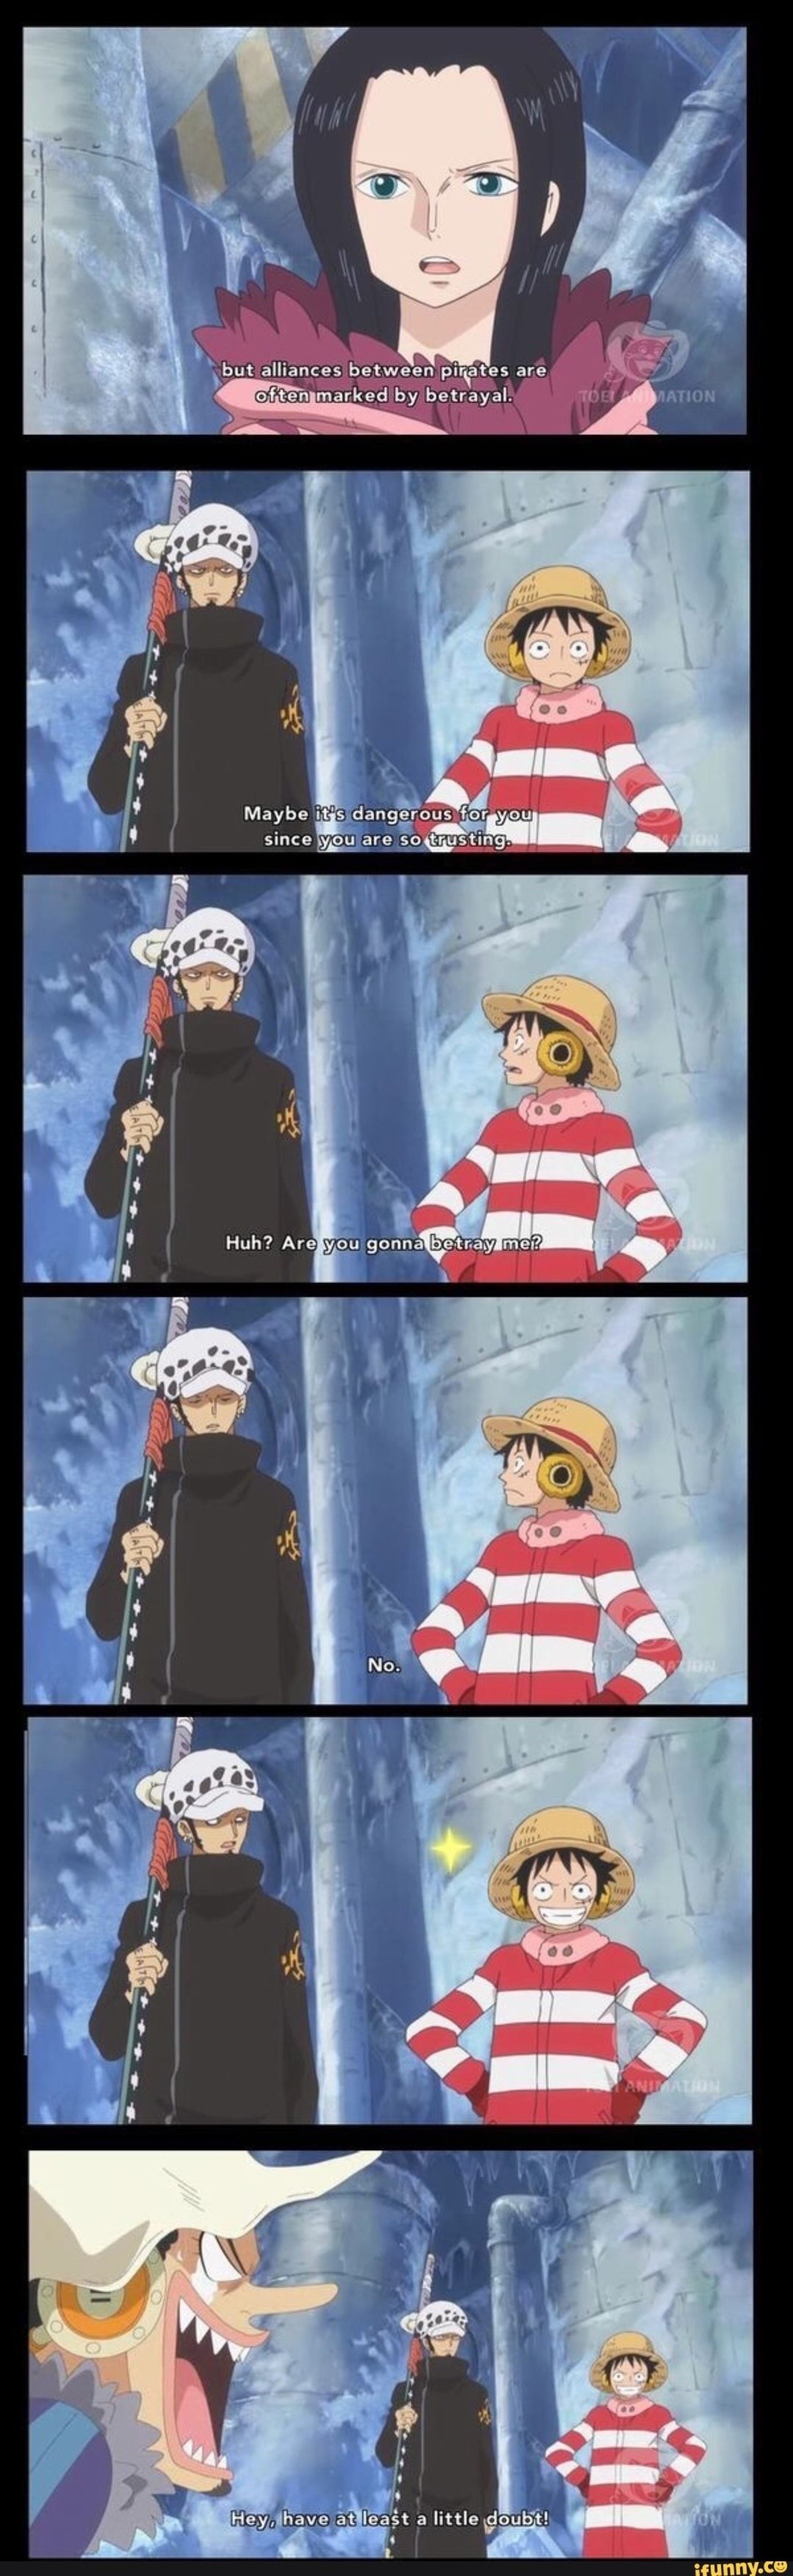 fwends. join list: onepiece (236 subs)Mention History.. luffys fw